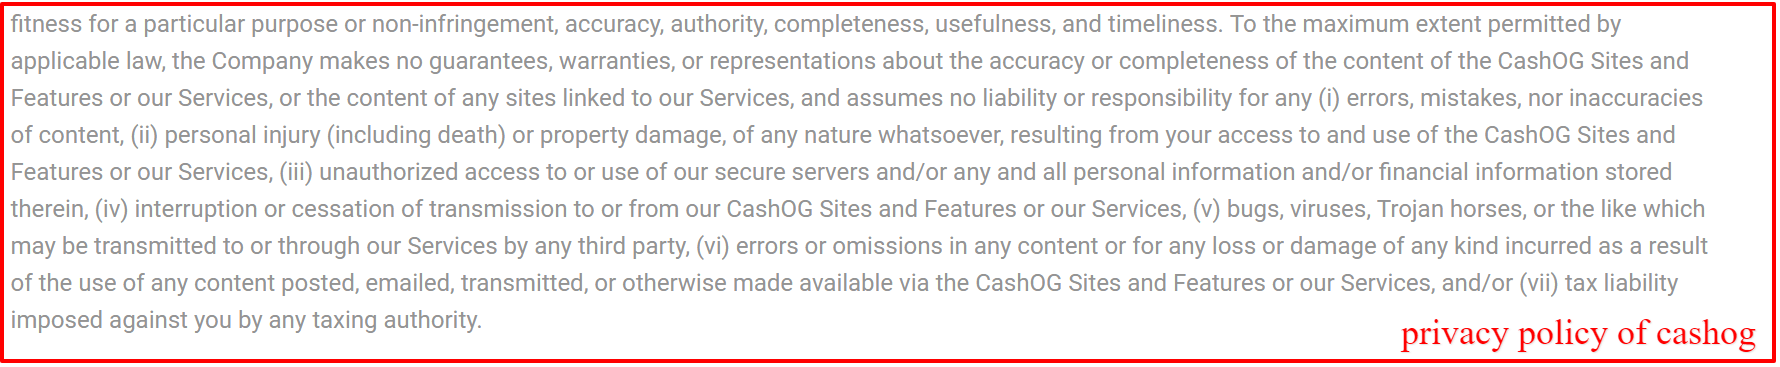 privacy policy of cashog